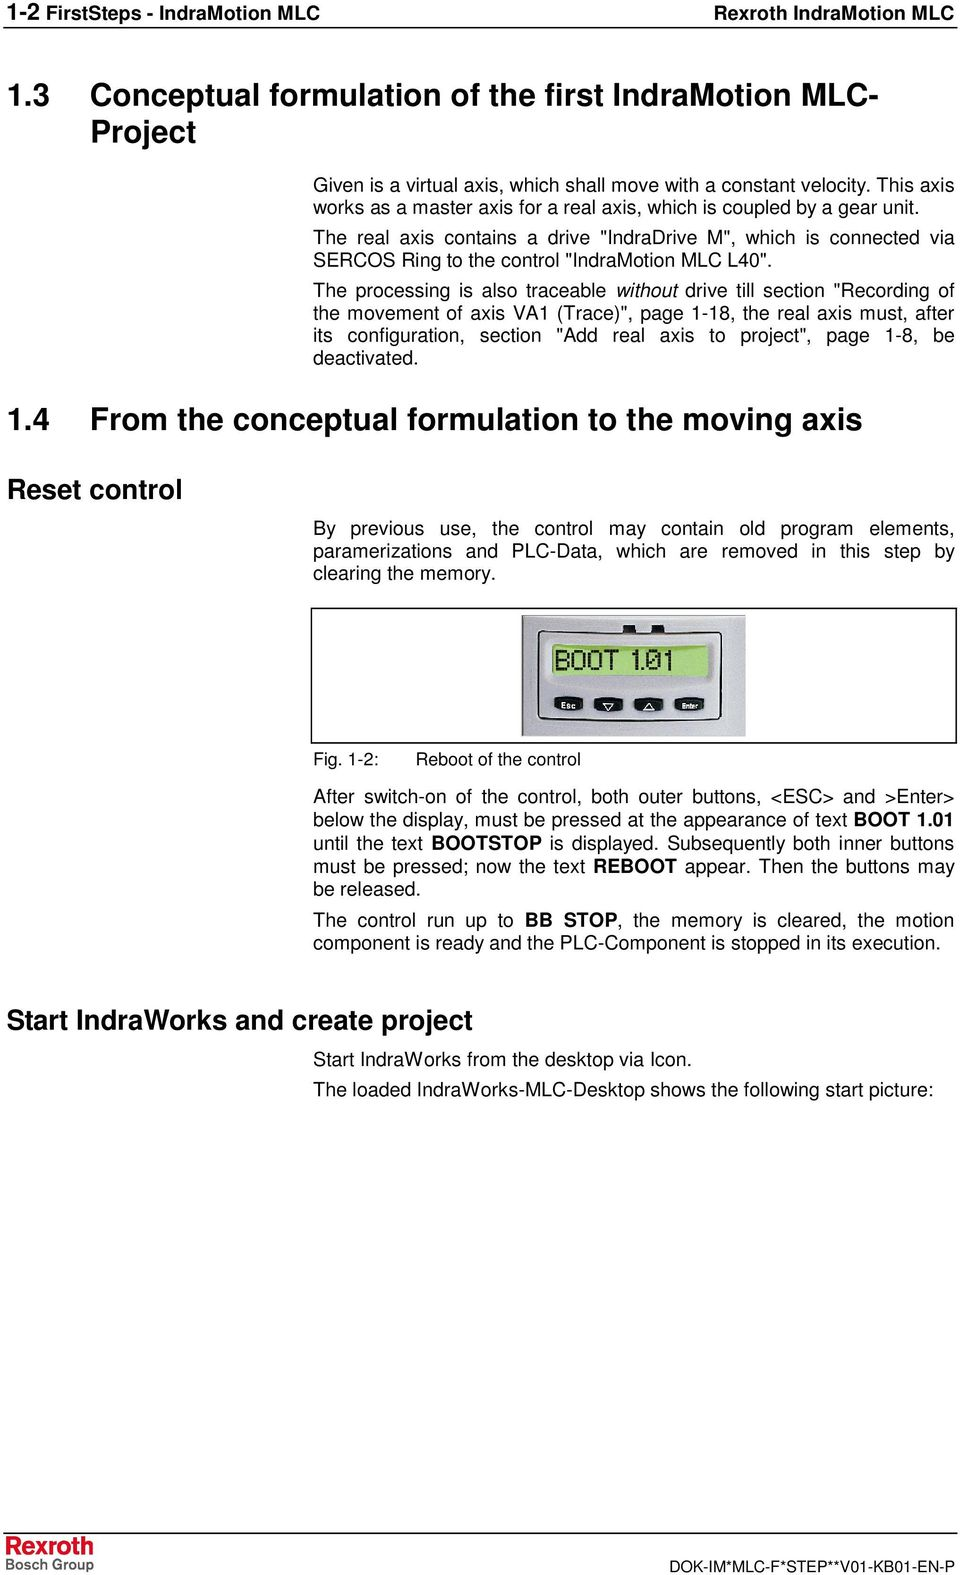 Rexroth Indramotion Mlc First Steps Training Manual Pdf Light Controller Wiring Diagram The Real Axis Contains A Drive Indradrive M Which Is Connected Via Sercos